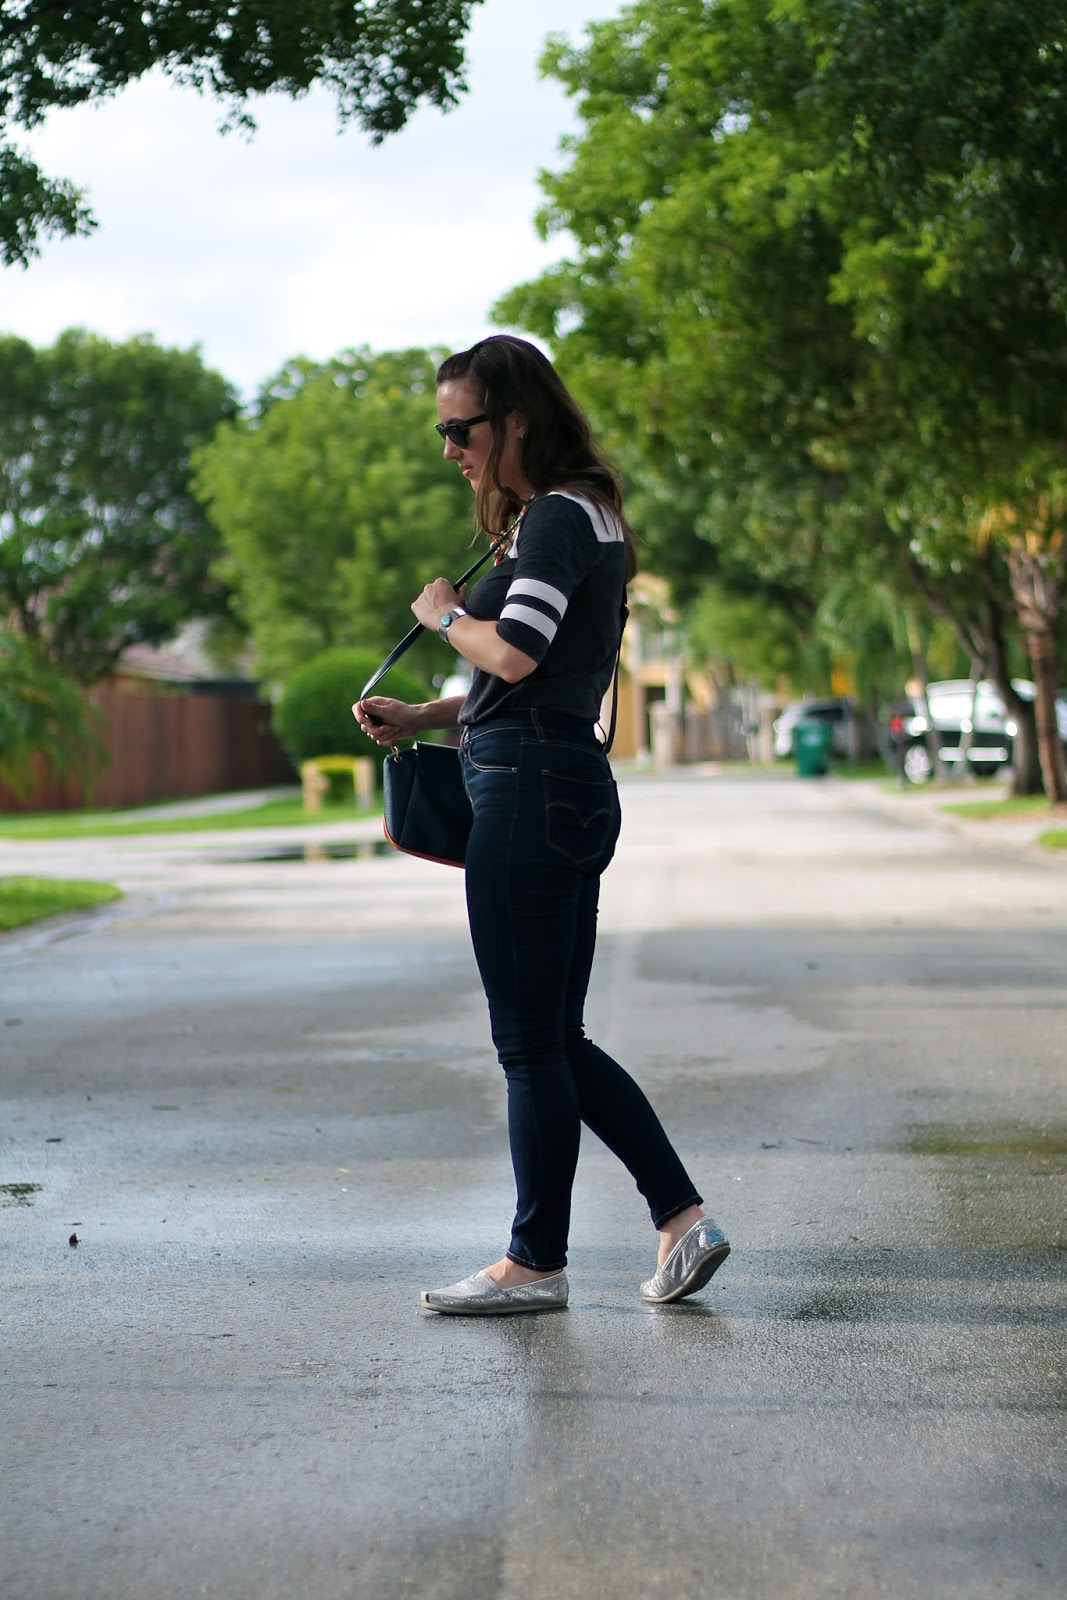 Lucky Brand, Levi's, TOMS, Charming Charlie, Ray-Ban, style blogger, fashion blogger, capsule collection, Miami fashion blogger, Miami style, high-waisted jeans, fashion, style, look book, outfit ideas, weekend wear